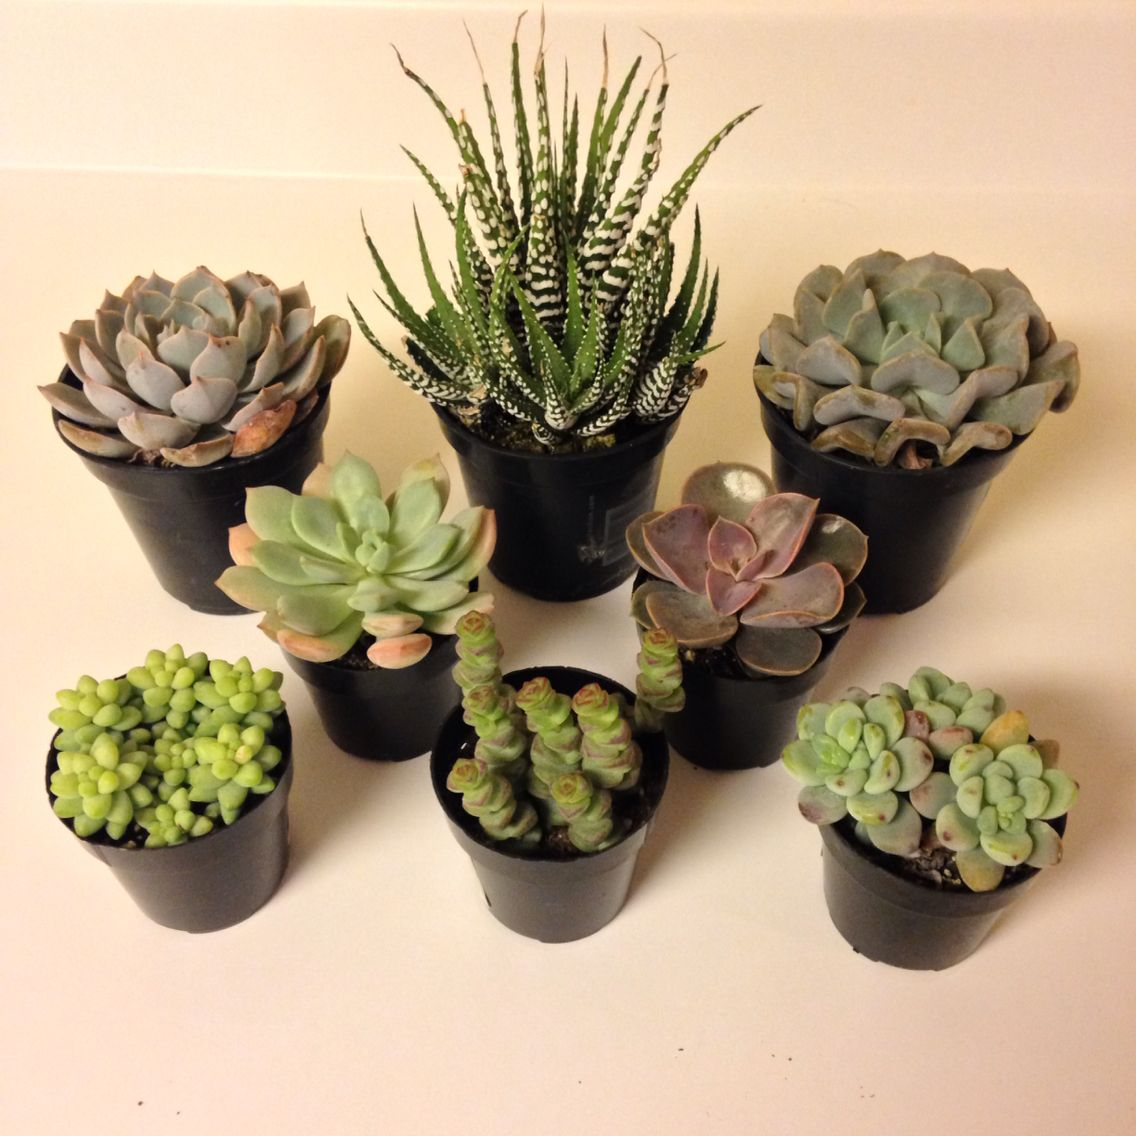 New Succulents Such Cute Little Indoor Plants Some Echeveria One Zebra Plant Etc